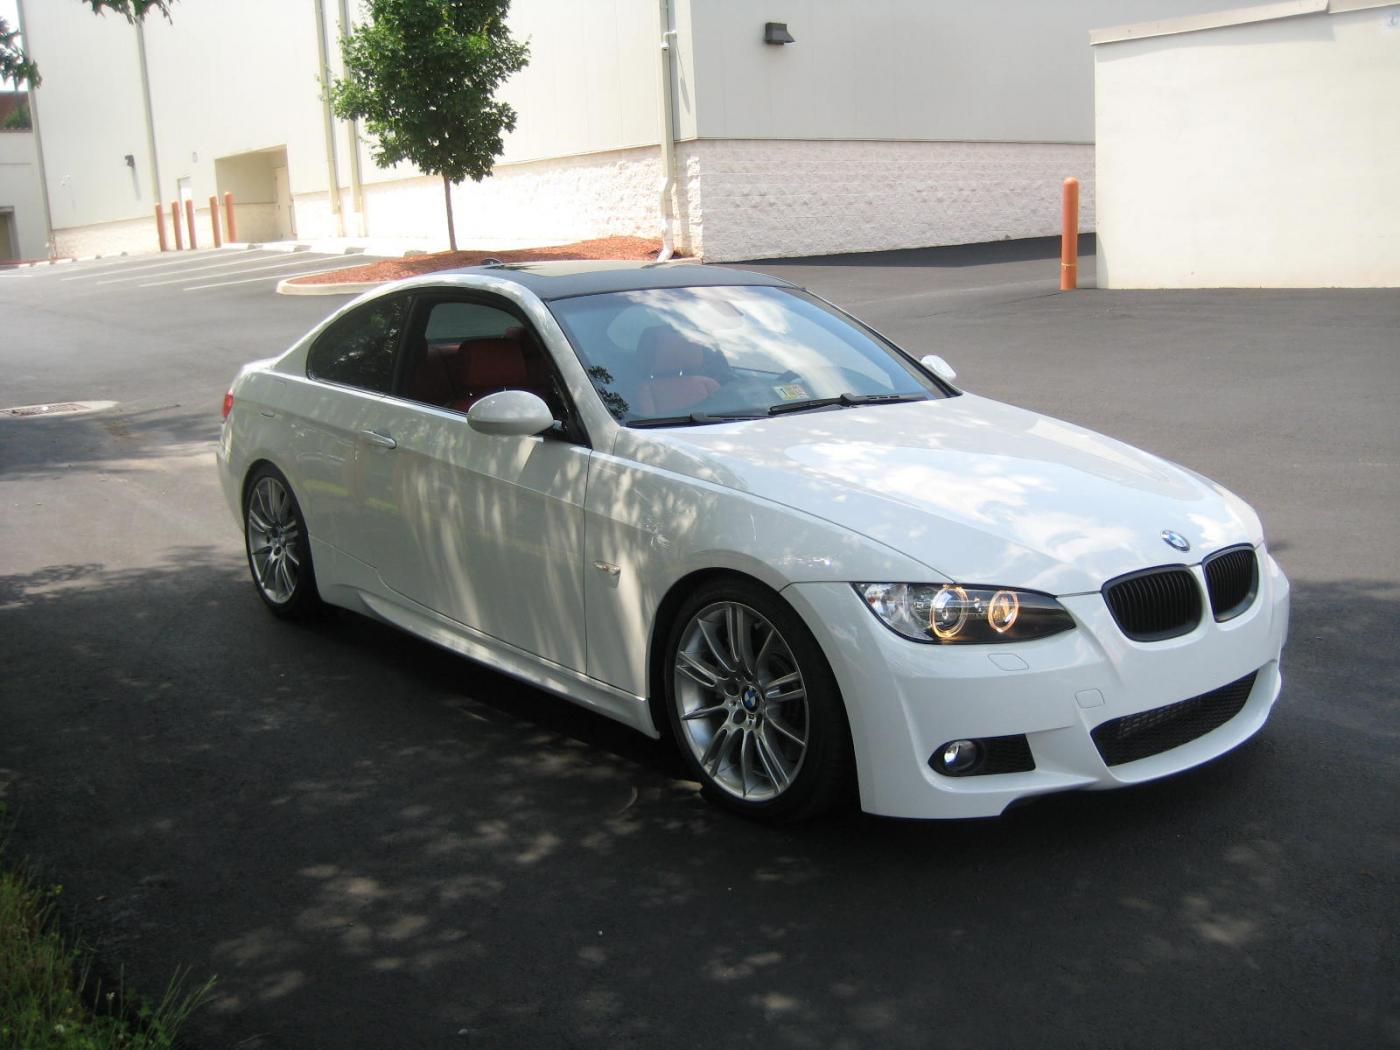 Fs 2009 bmw 335i coupe m sport alpine white coral red all upgrades